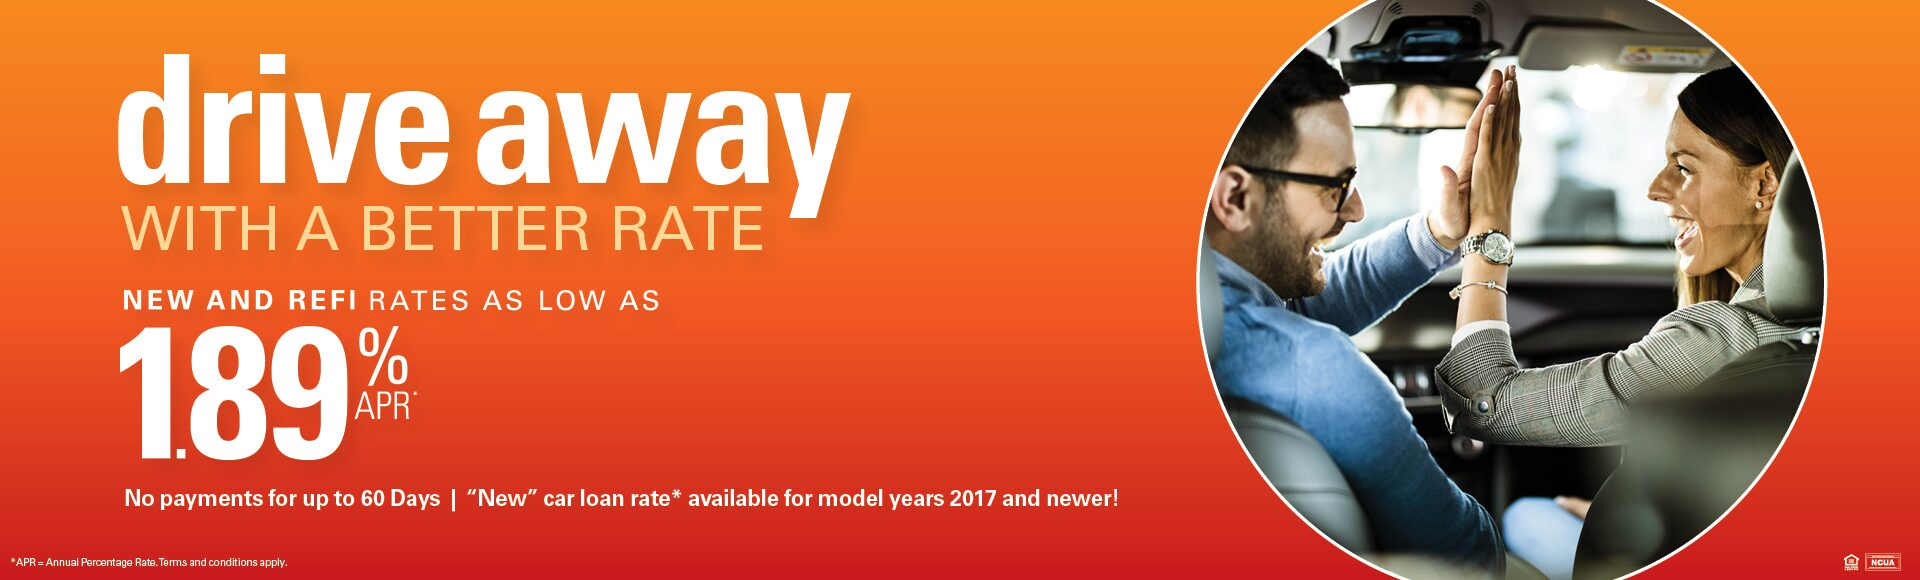 Drive away with a better rate. New and refi rates as low as 1.89% APR.